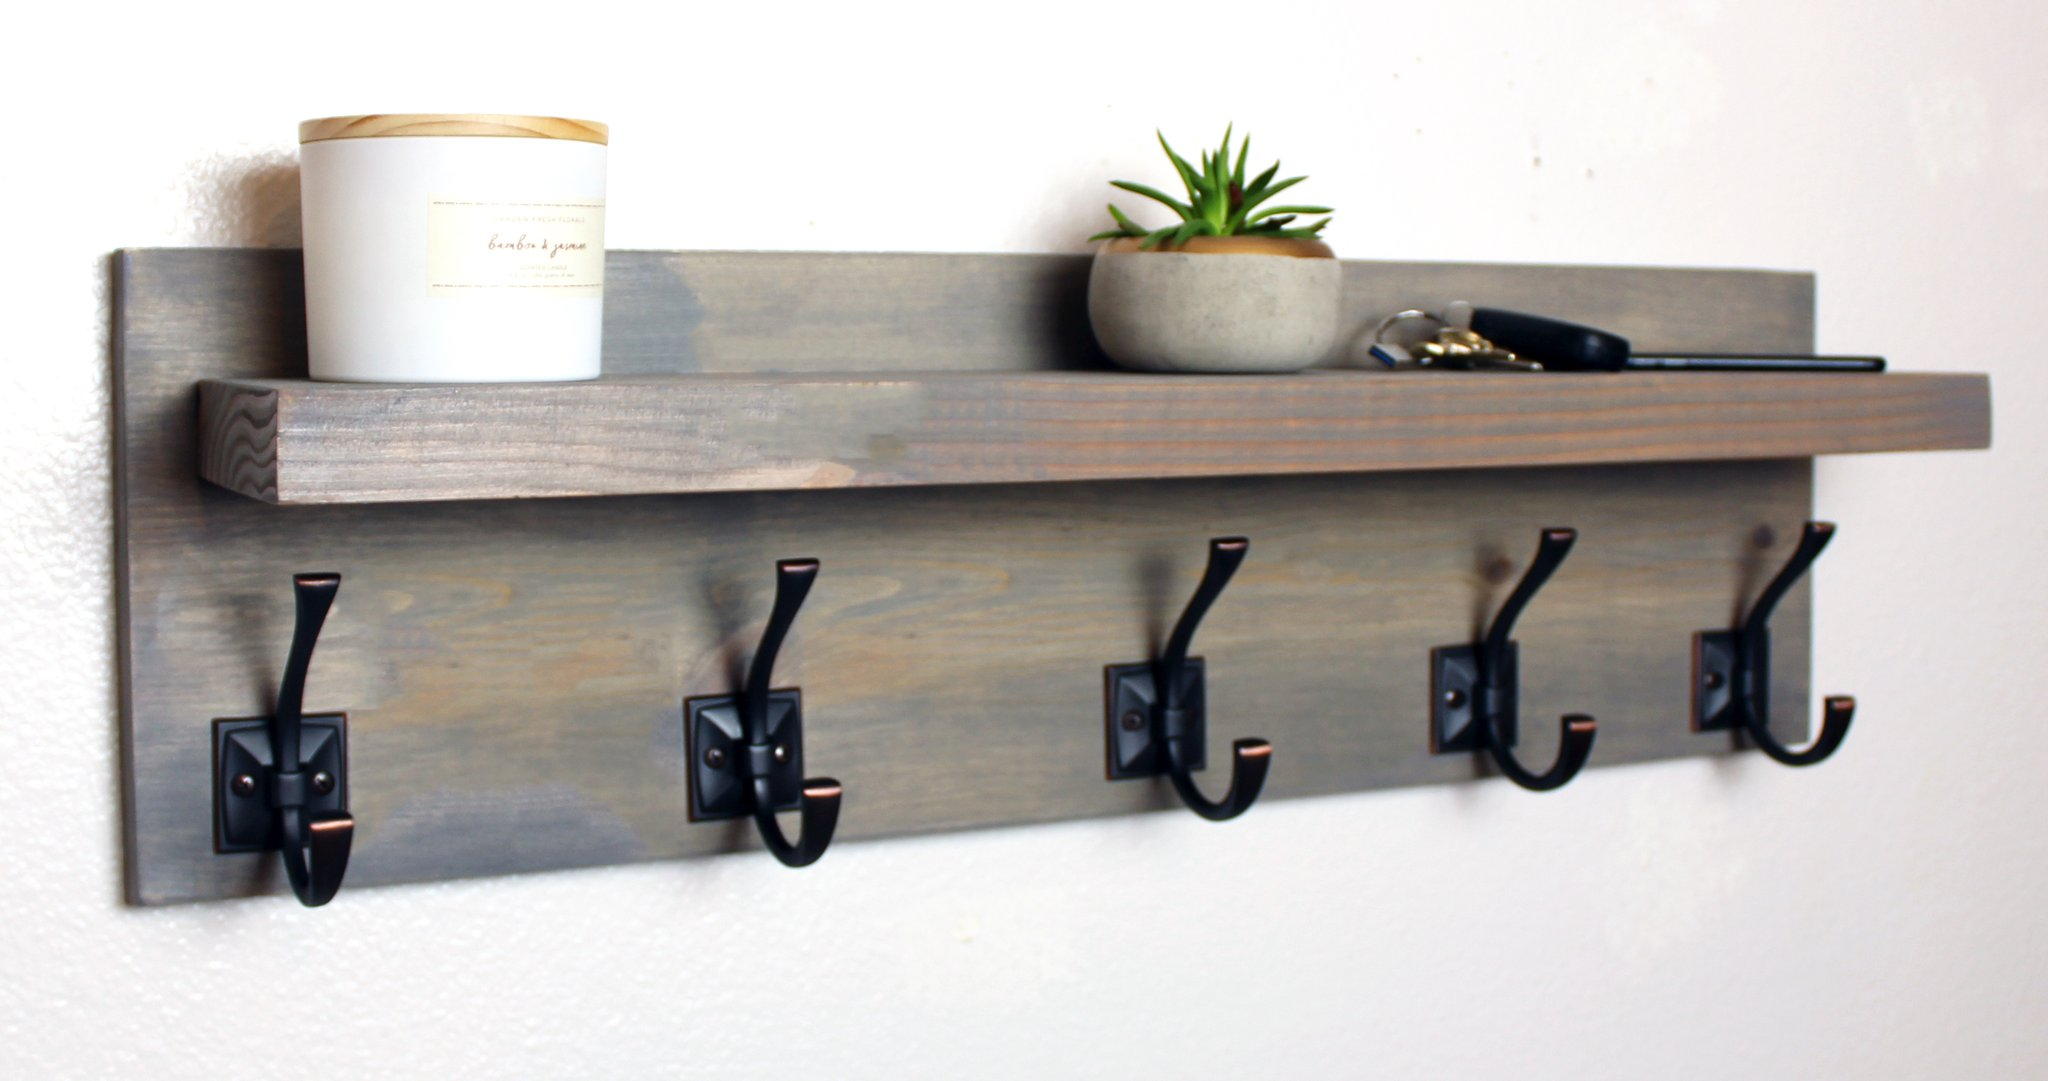 coat rack with floating shelf and bronze hooks kbndecor img edited weathered gray farmhouse storage hat the range shelves light oak shelving unit plastic racks for kitchen units